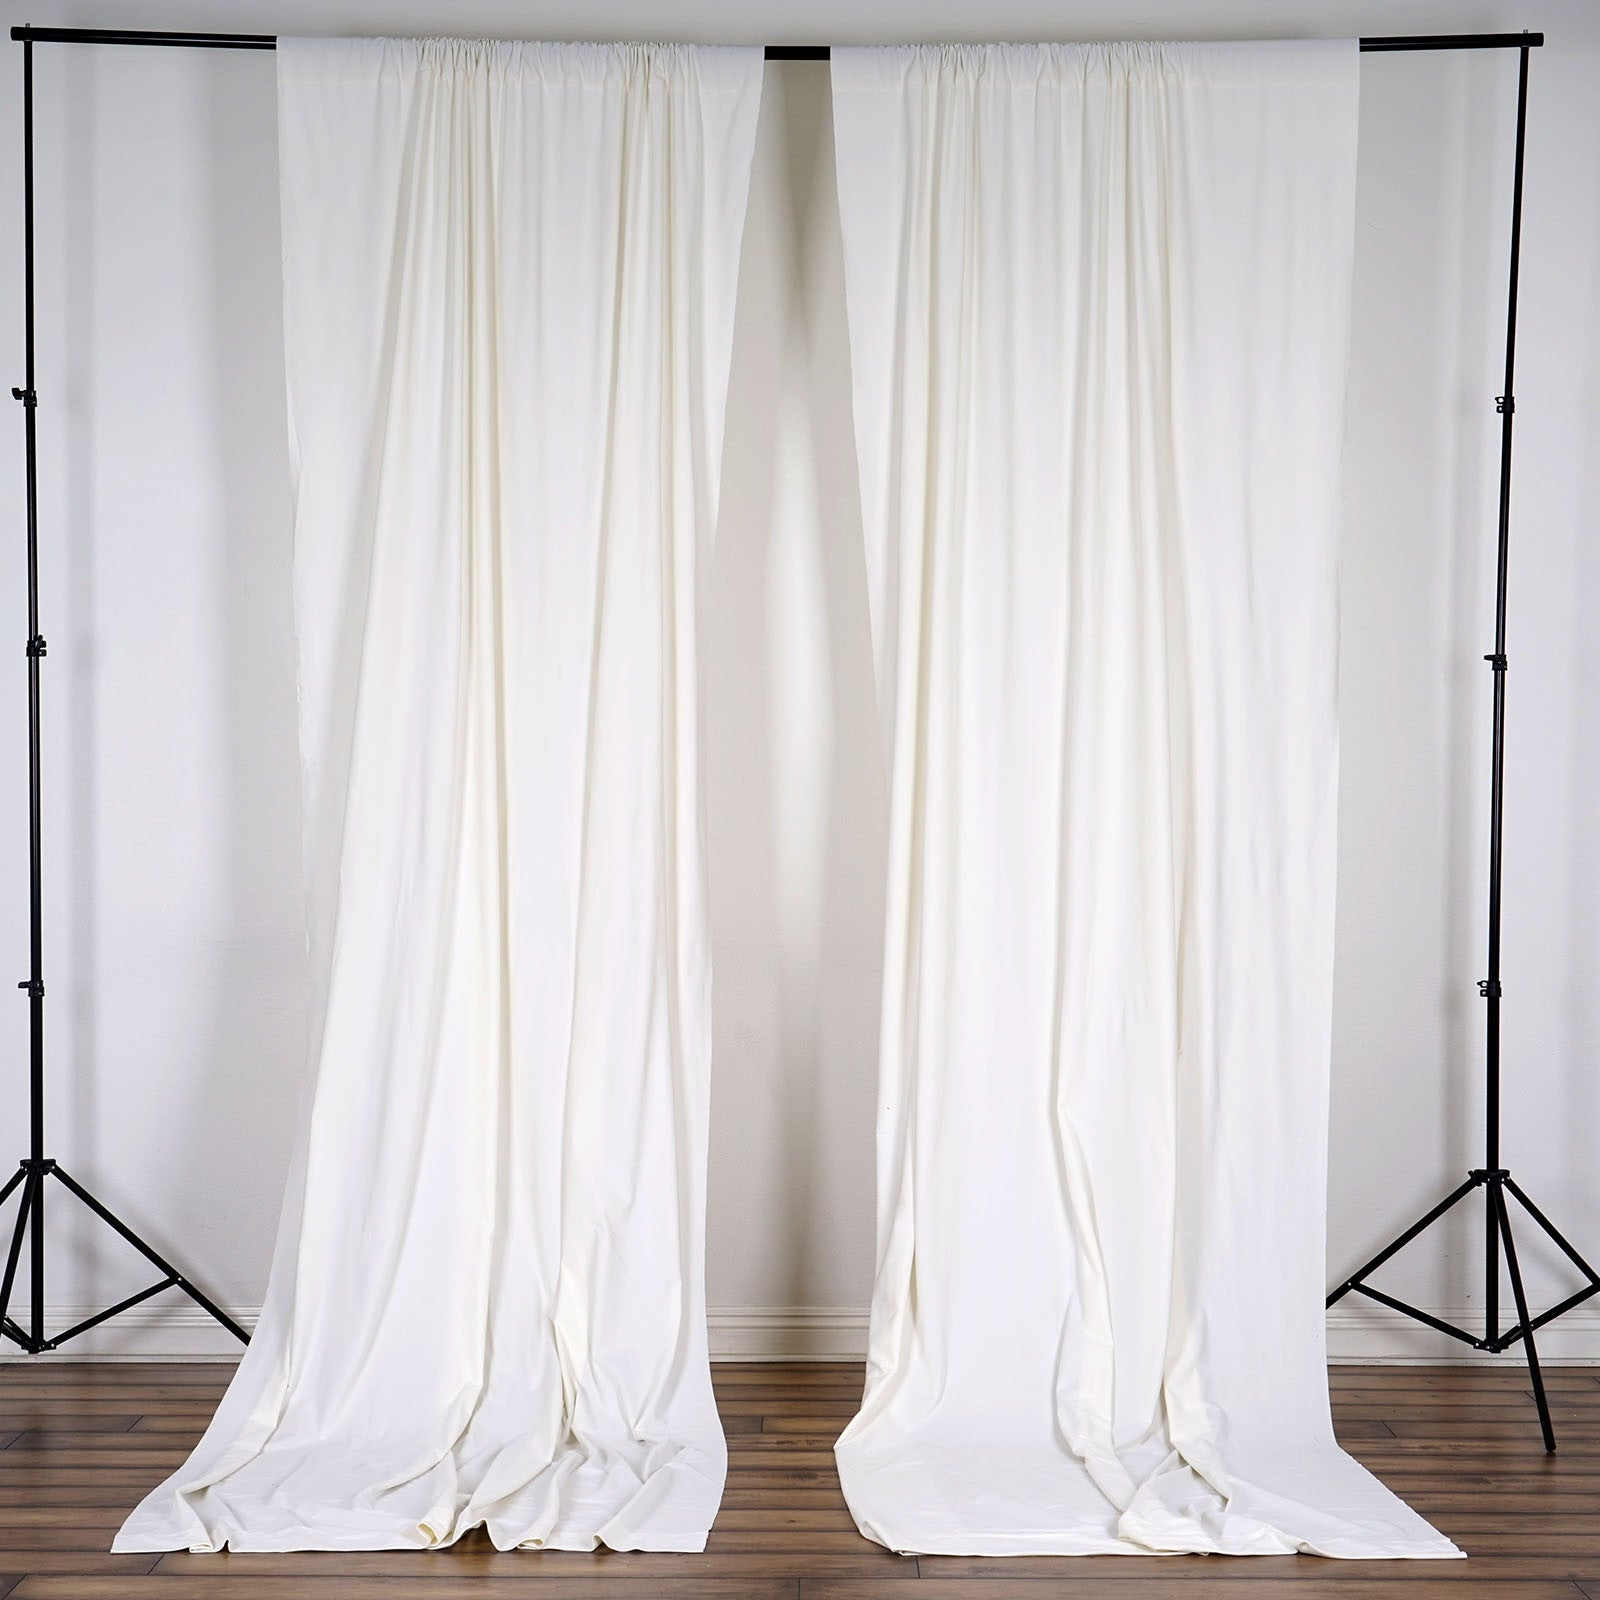 couture curtains petal curtain ivory window couturedreams solid panels drapery dreams panel chichi